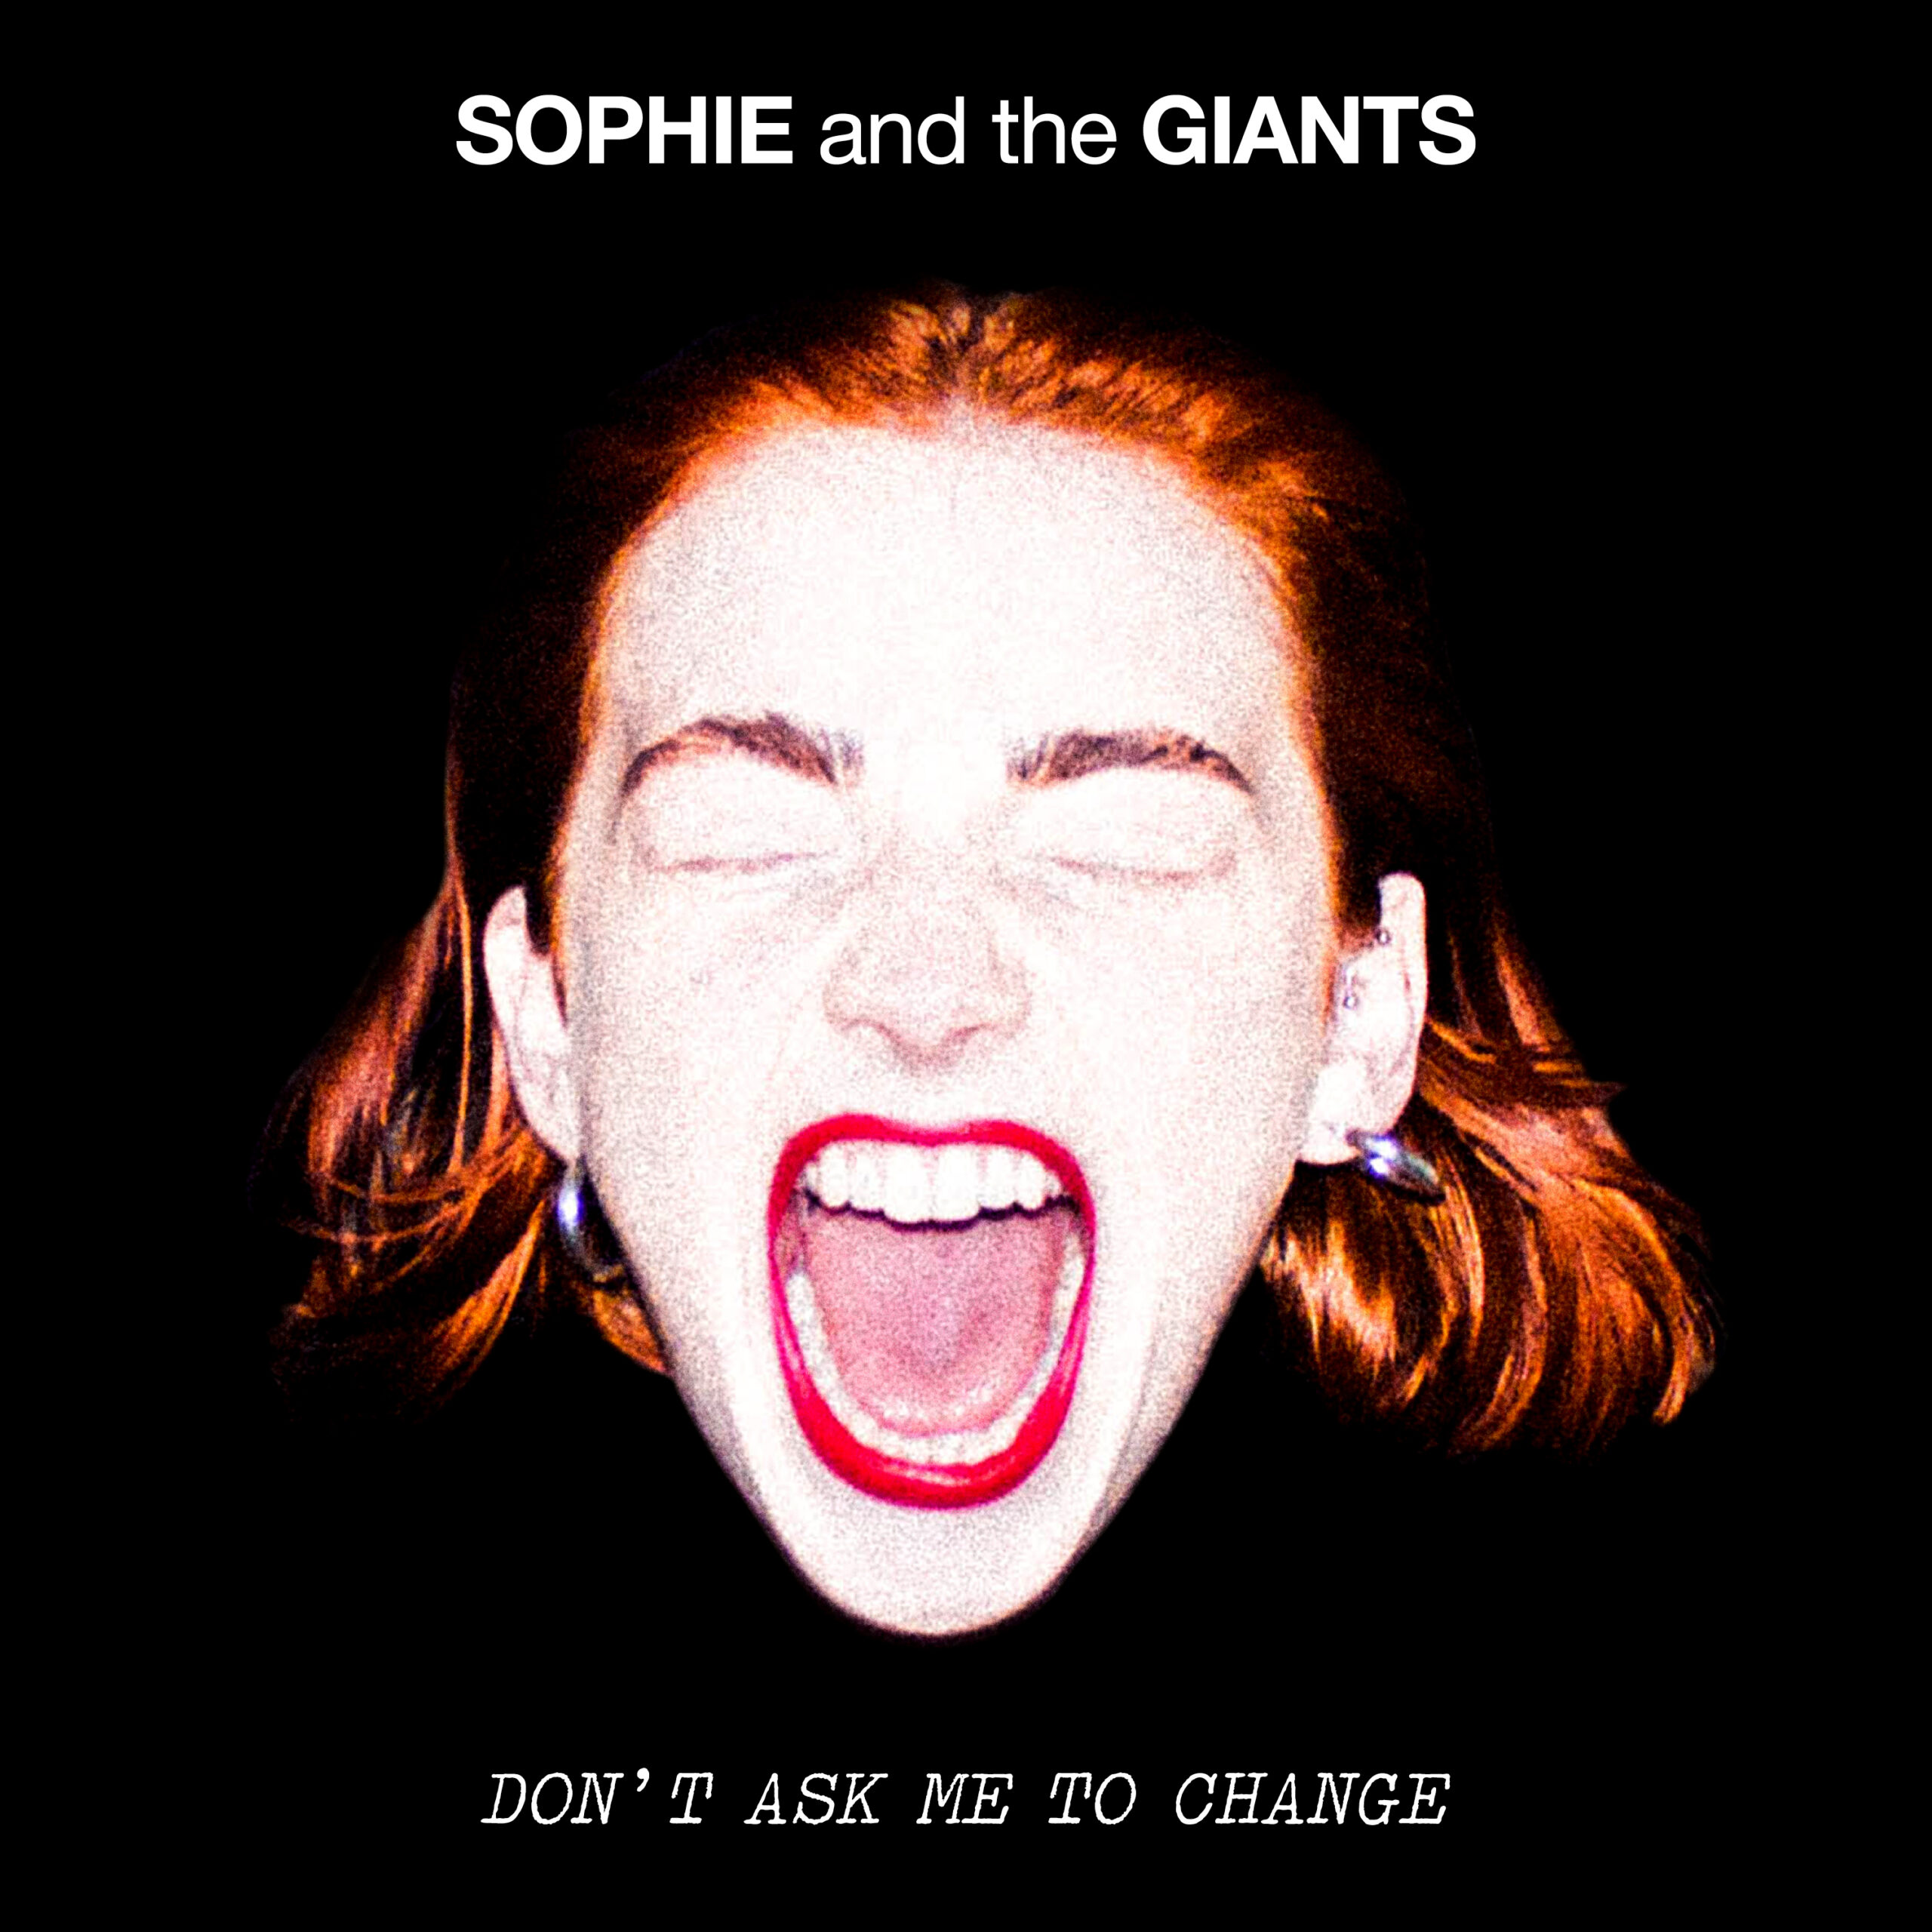 Sophie artwork courtesy of Republic Records for use by 360 Magazine